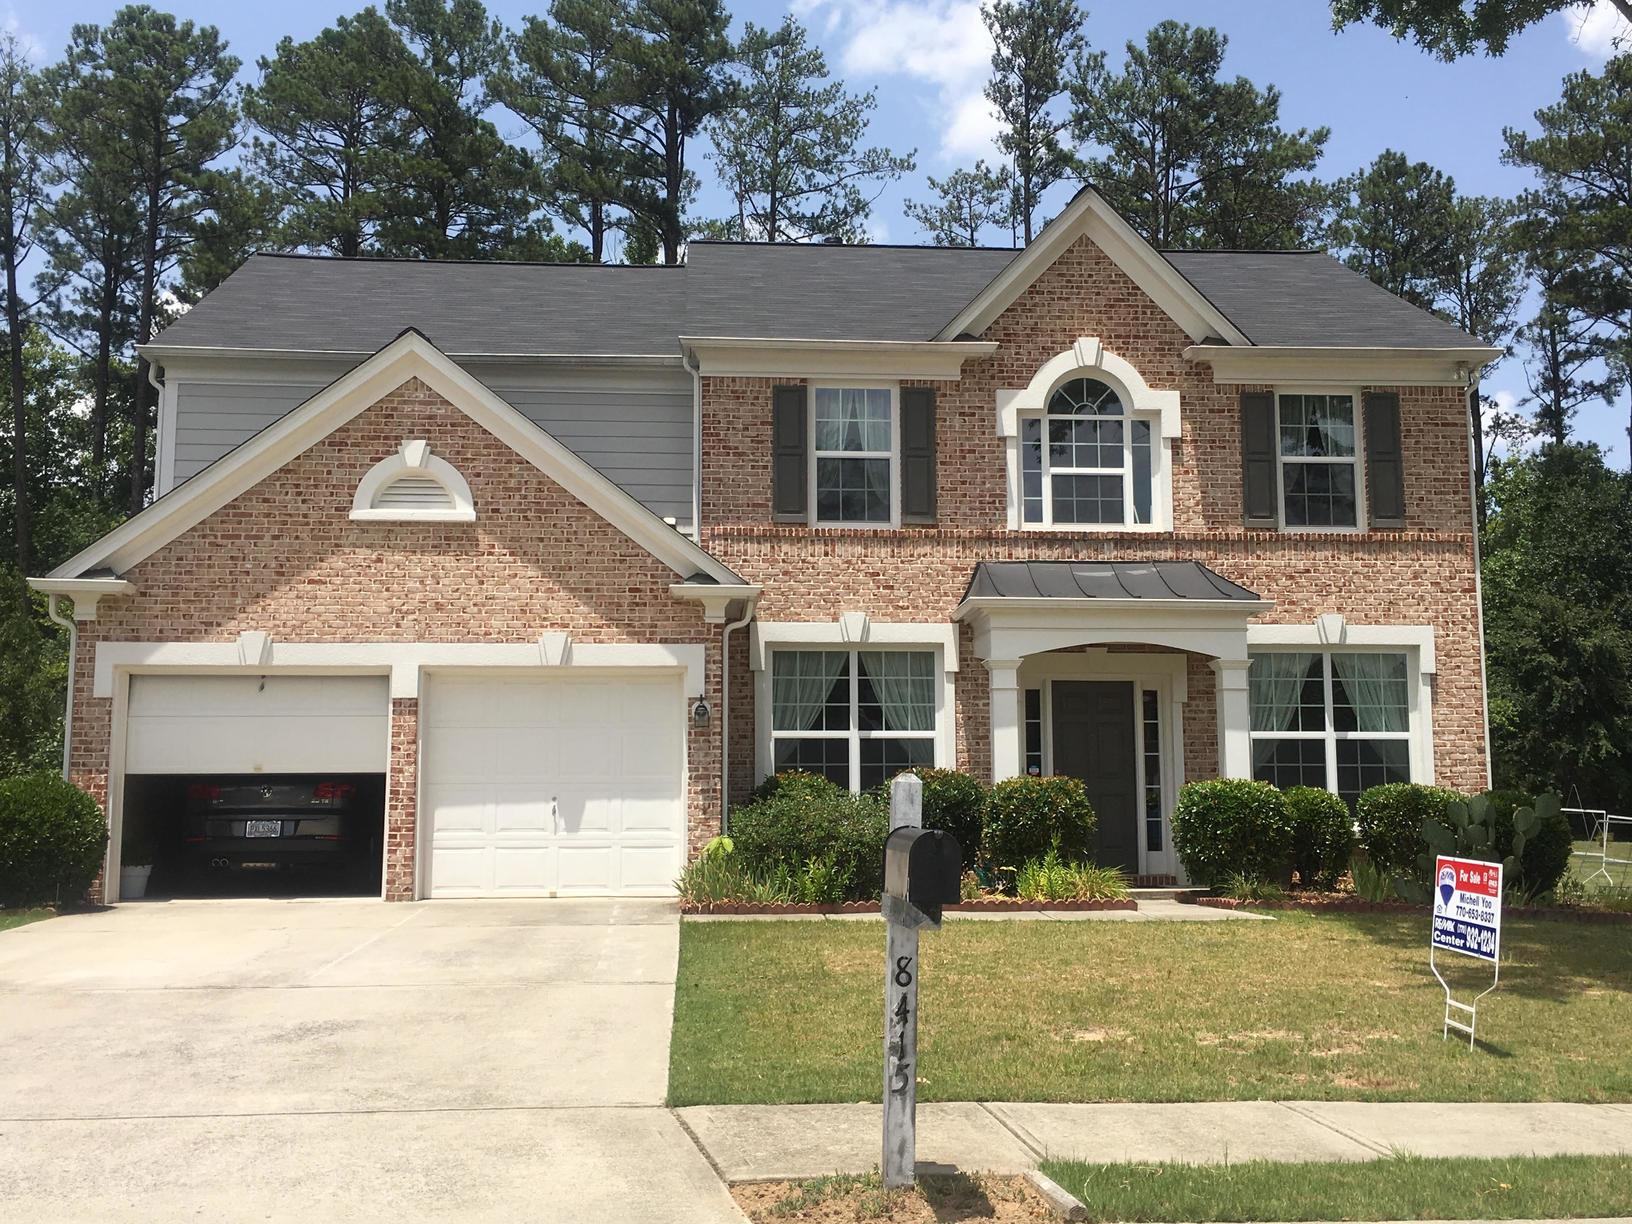 Insurance Claim Roof Replacement - Hail damage in Suwanee - After Photo